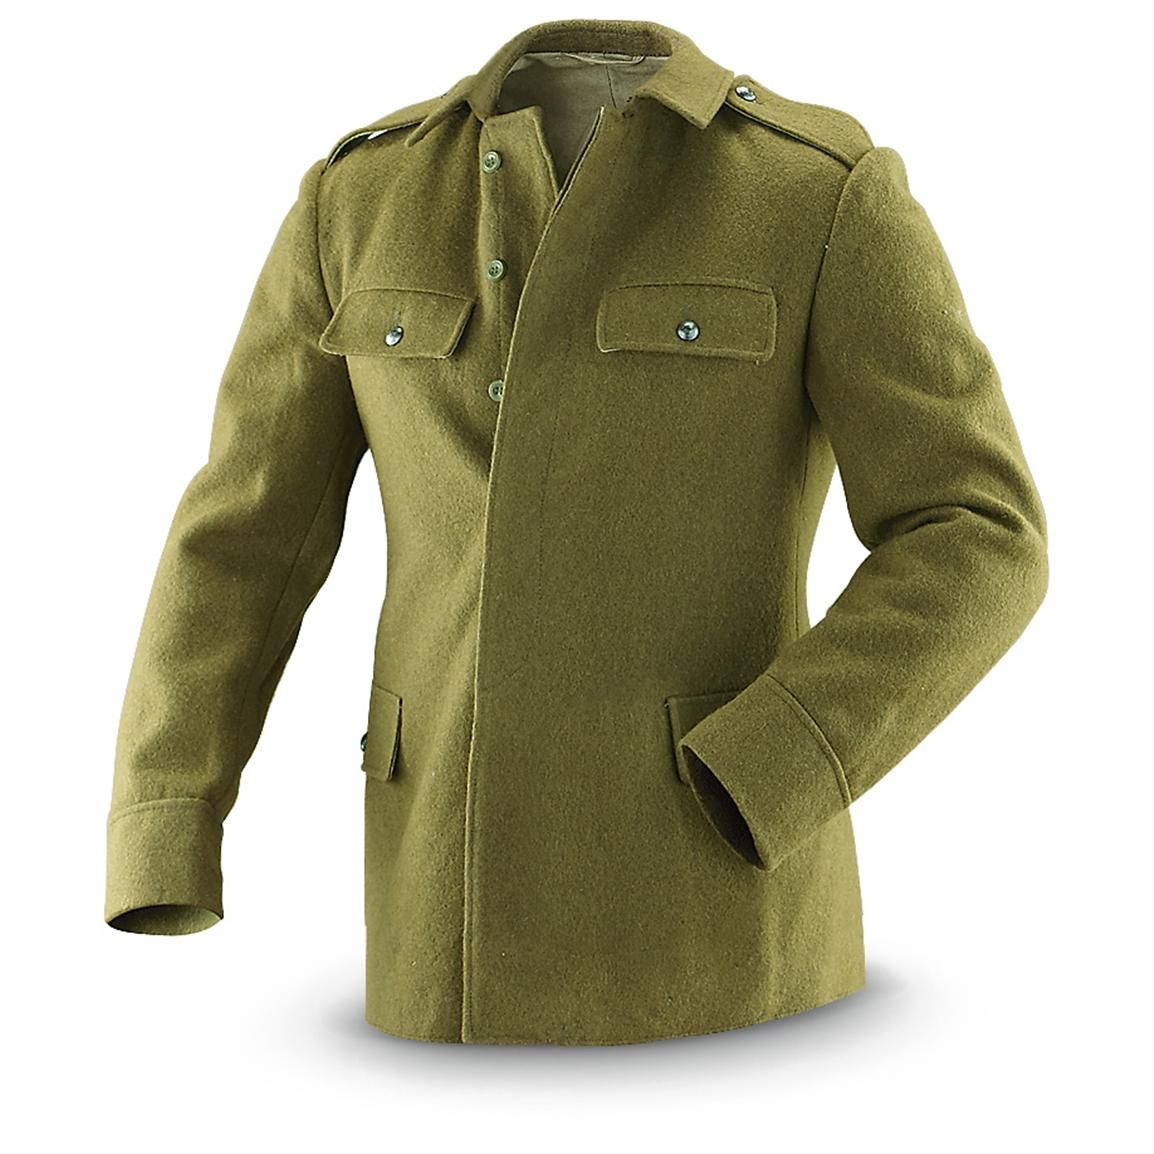 Used Romanian Military Wool Field Jacket | Men's Fashion ...